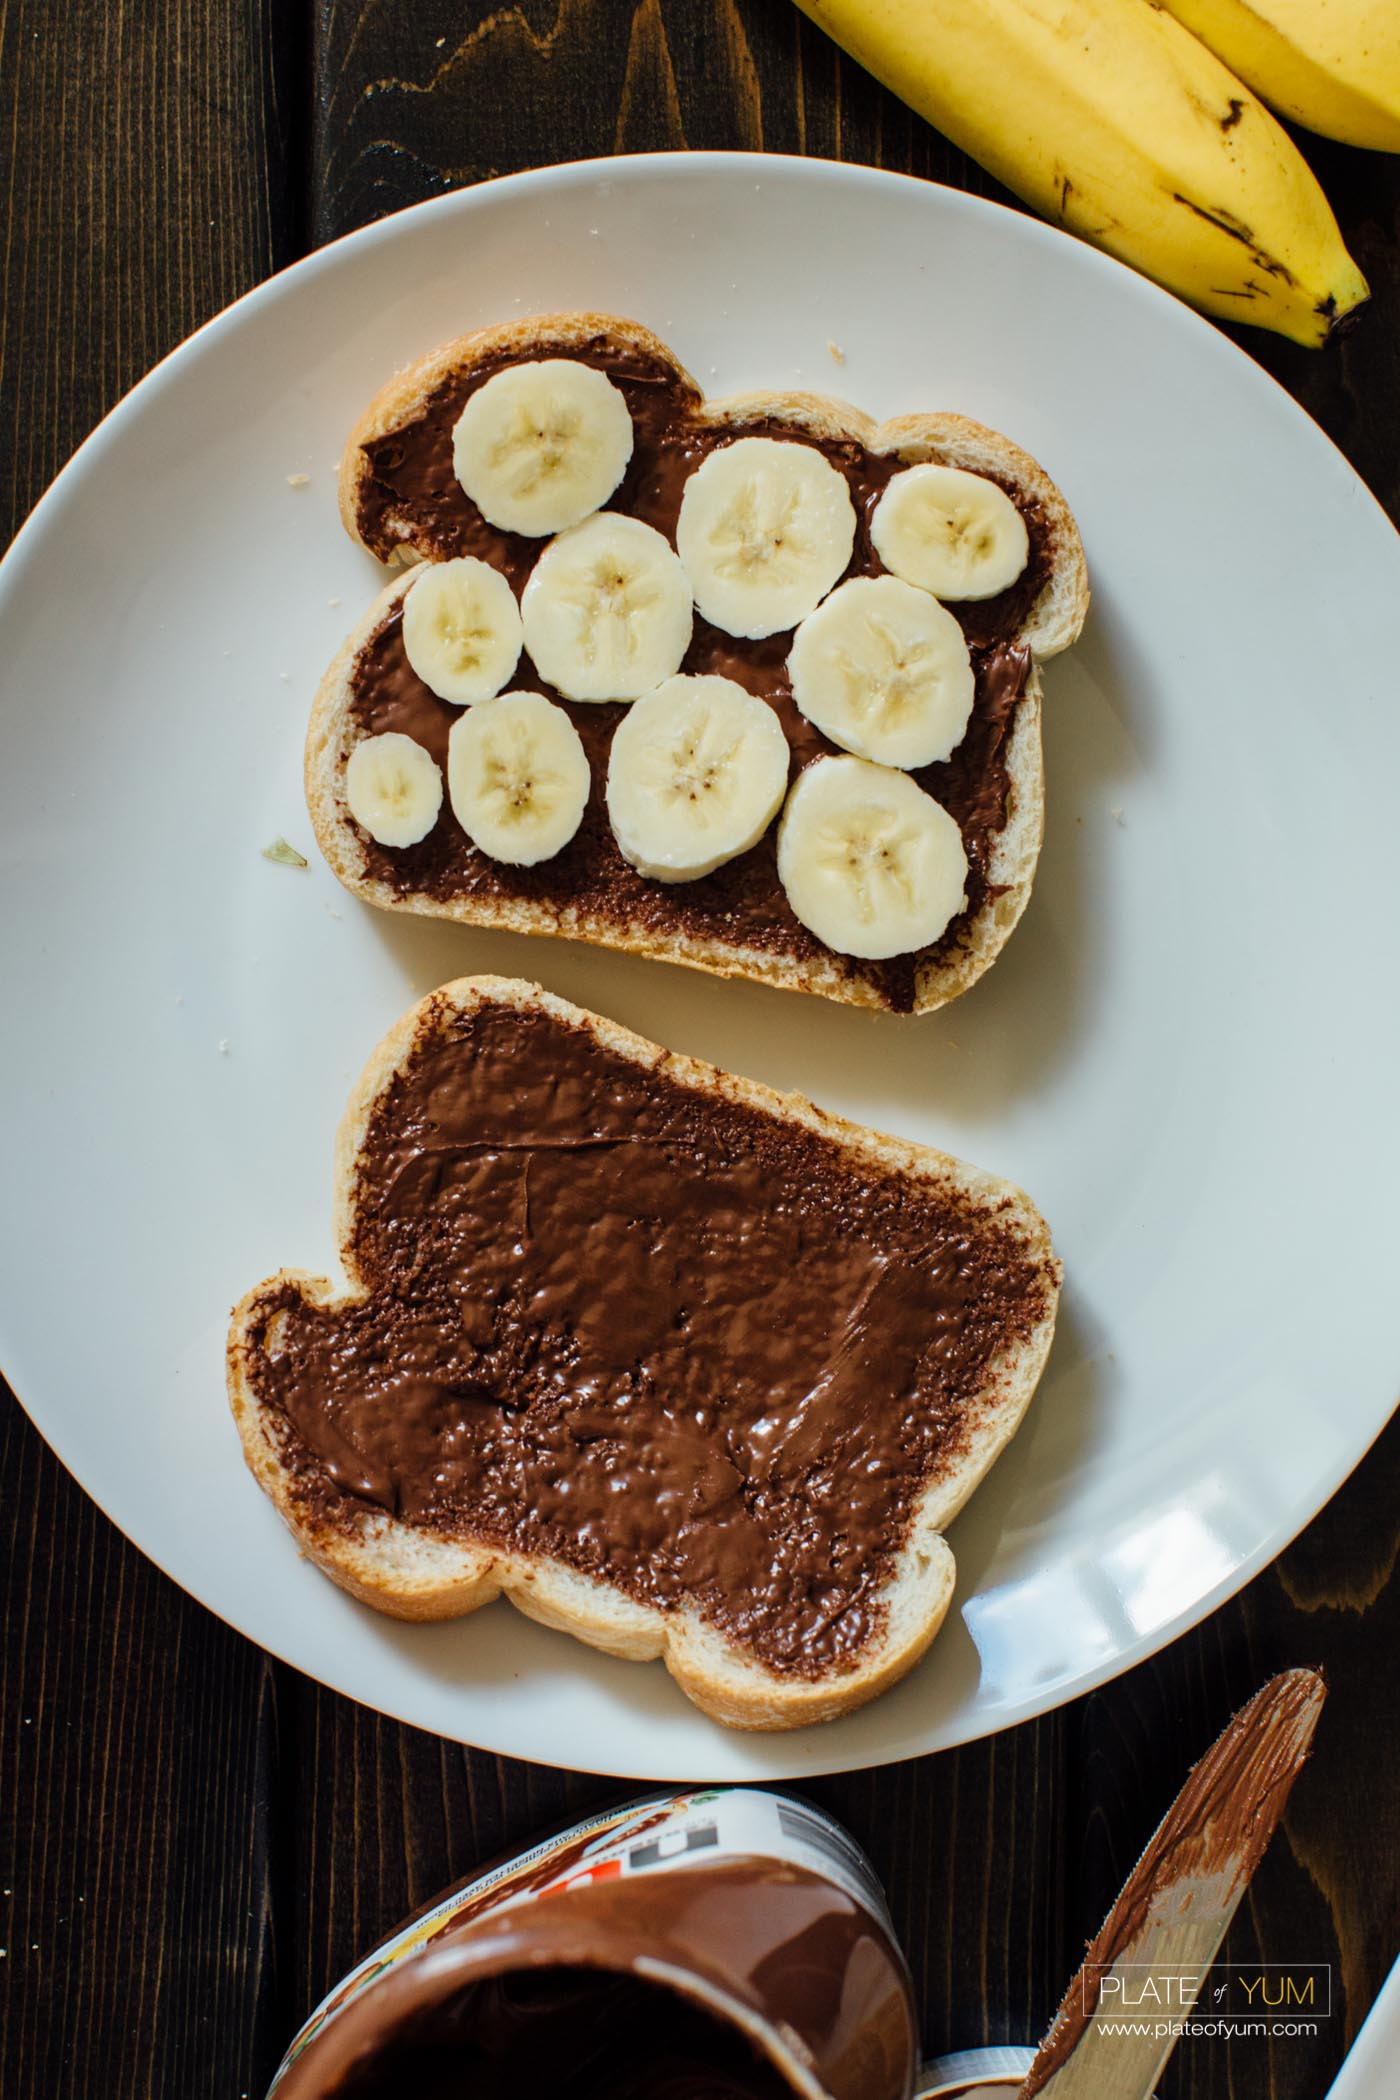 Now You're Ready For The French Toast Part Of This Recipe Put The 2 Slices  Of Bread Together And Make A Nutella Banana Sandwich Heat Up The Skillet  With A